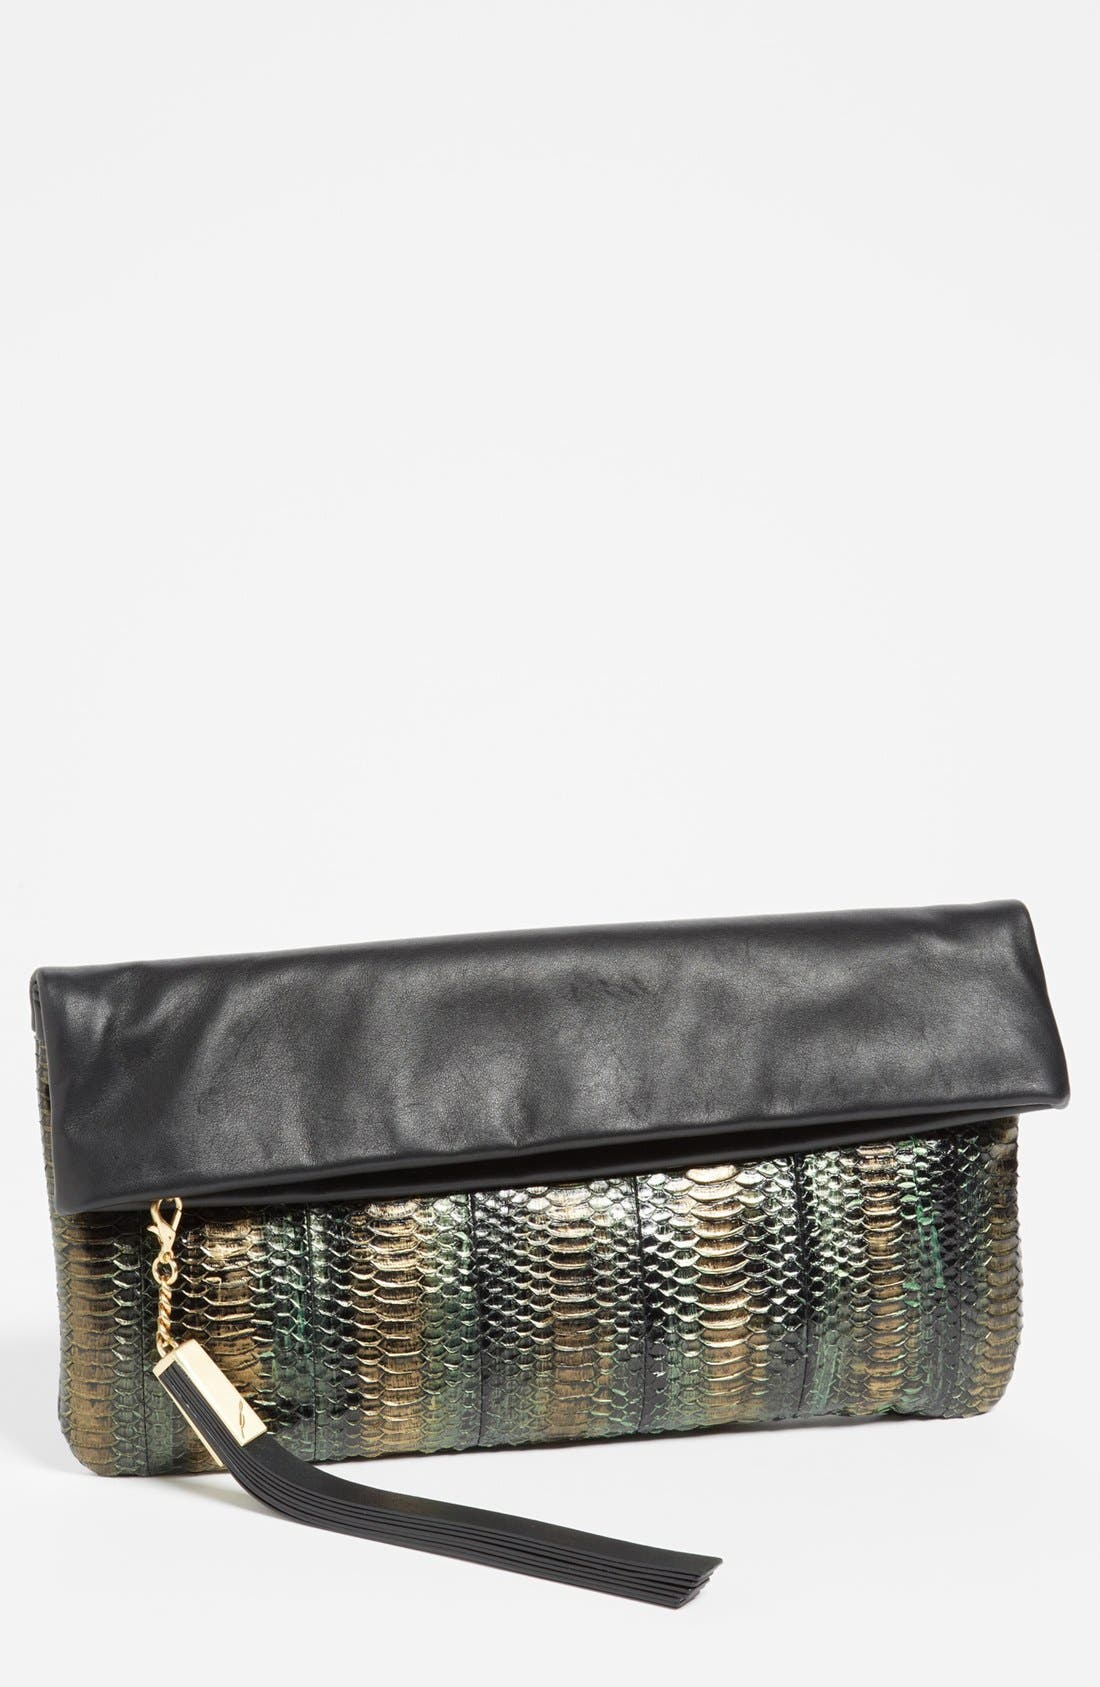 Alternate Image 1 Selected - B Brian Atwood 'Robin' Leather Foldover Clutch